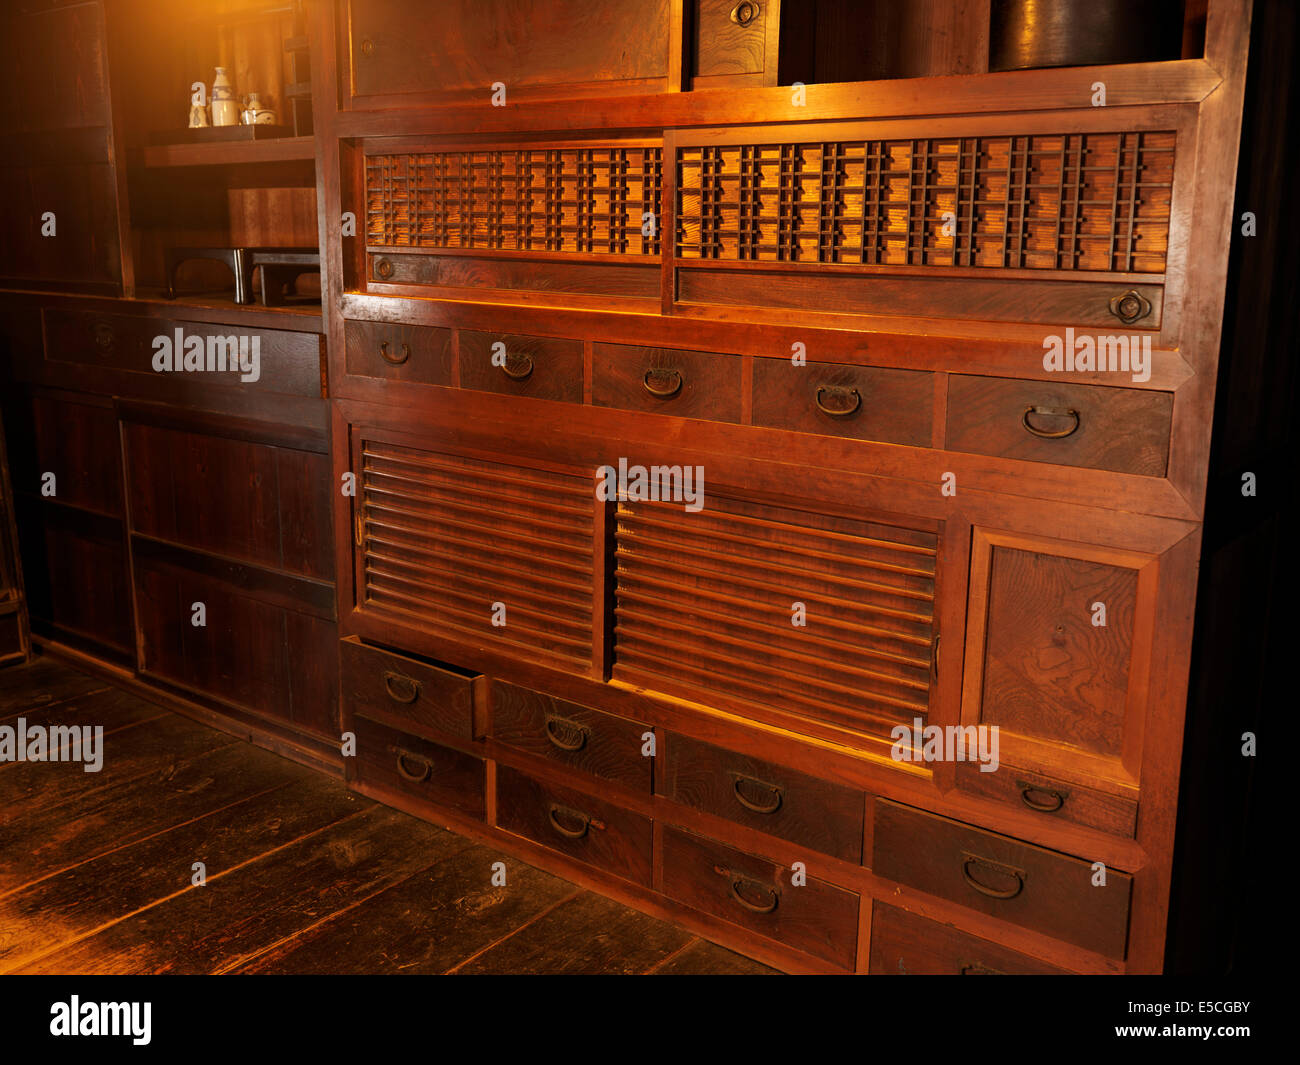 Antique wooden furniture in a historic Japanese house at Gero Onsen Gassho Village, Gifu Prefecture, Japan 2014 - Stock Image